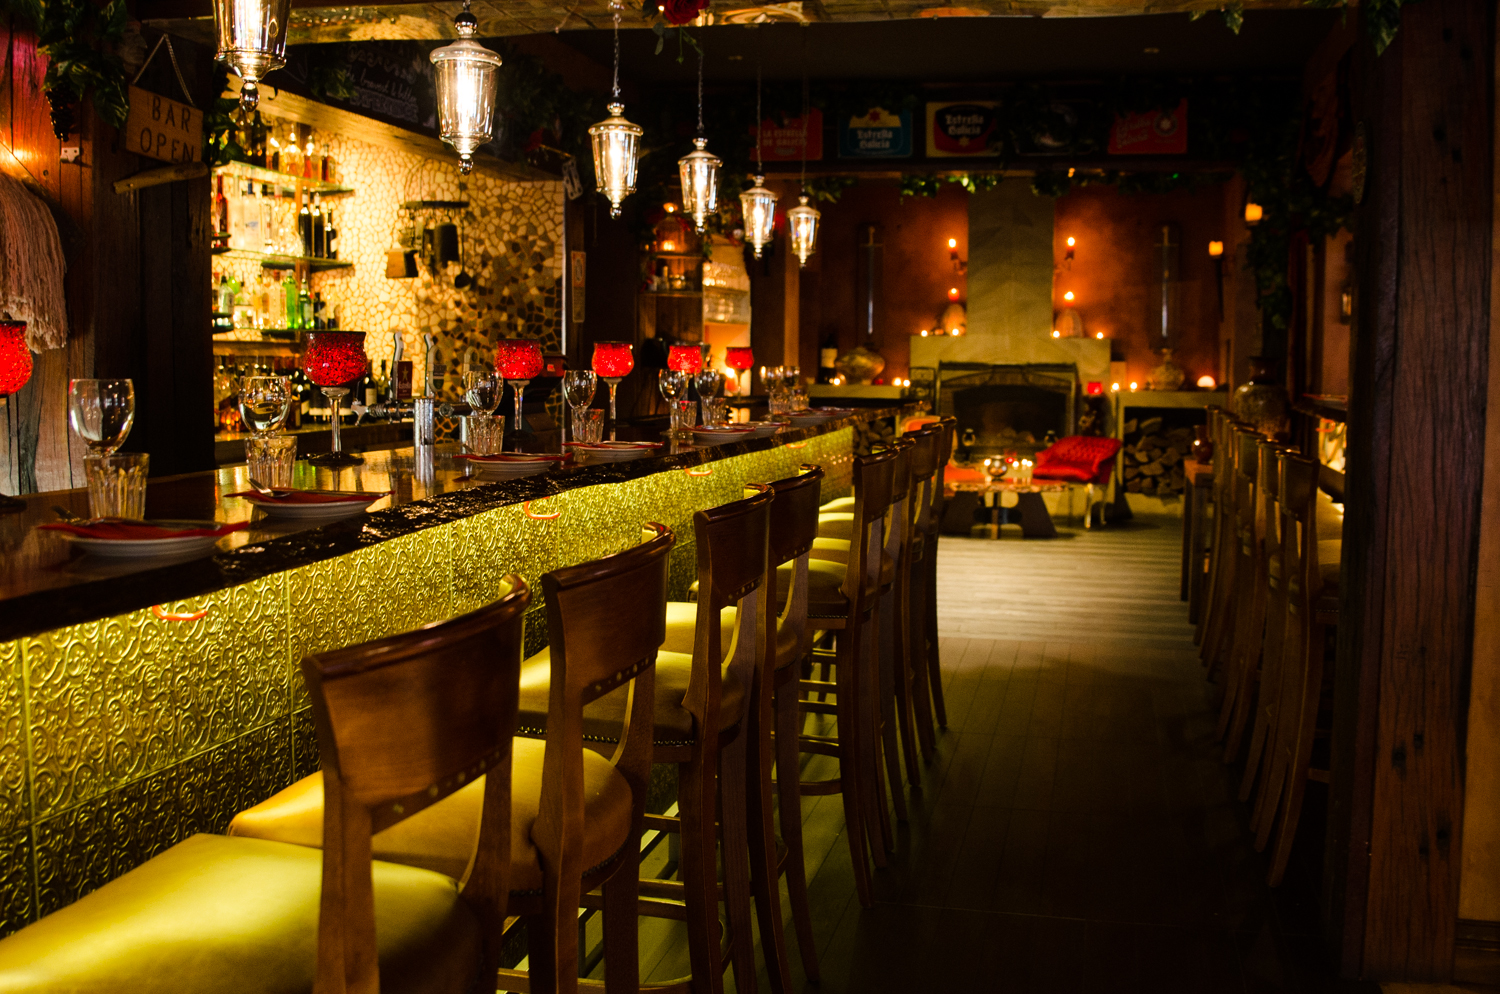 RESTAURANT/BAR/FUNCTION VENUE         SURRY HILLS   $250K